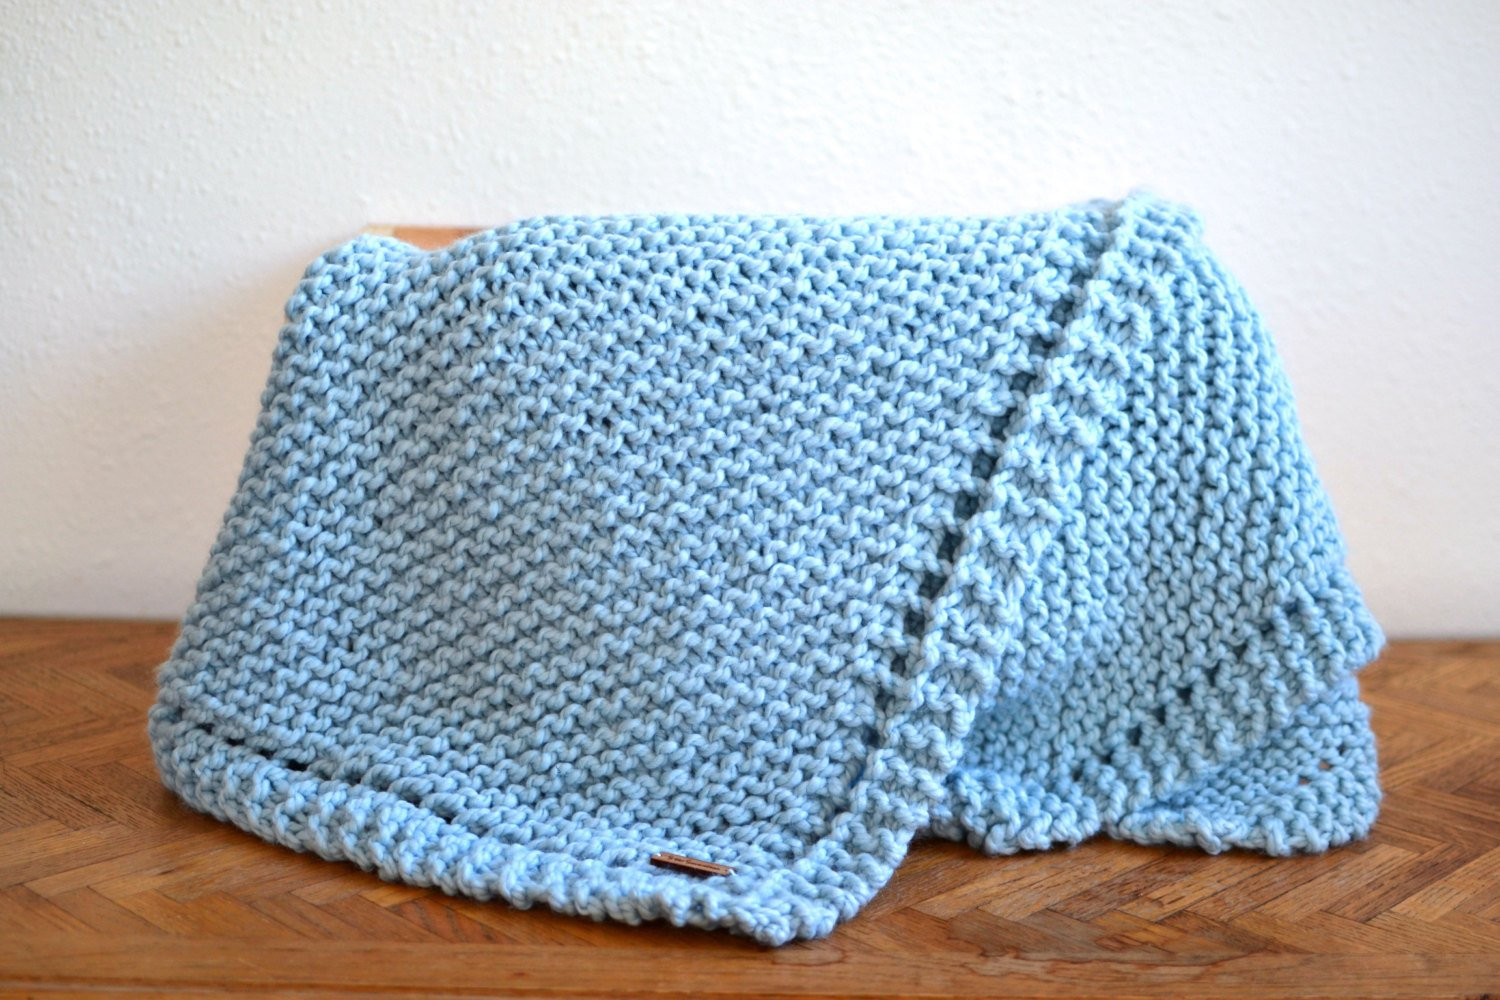 Knitted Baby Blanket Unique Baby Blanket Chunky Knit Blanket Hand Knitted Baby Of Amazing 46 Pictures Knitted Baby Blanket